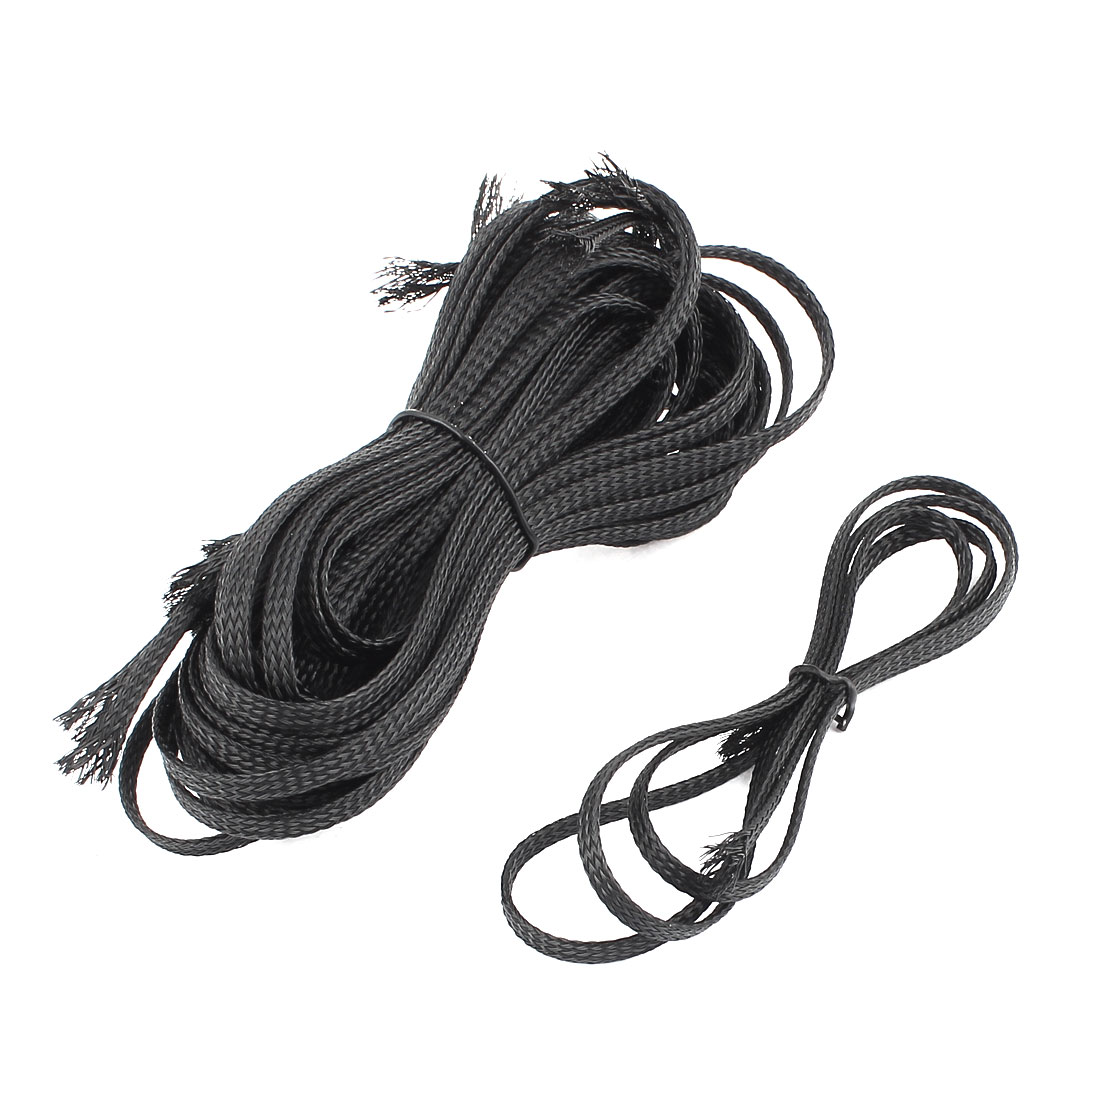 1M Length 5mm Width Nylon Braided Expandable Sleeving Cable Harness 12 Pcs